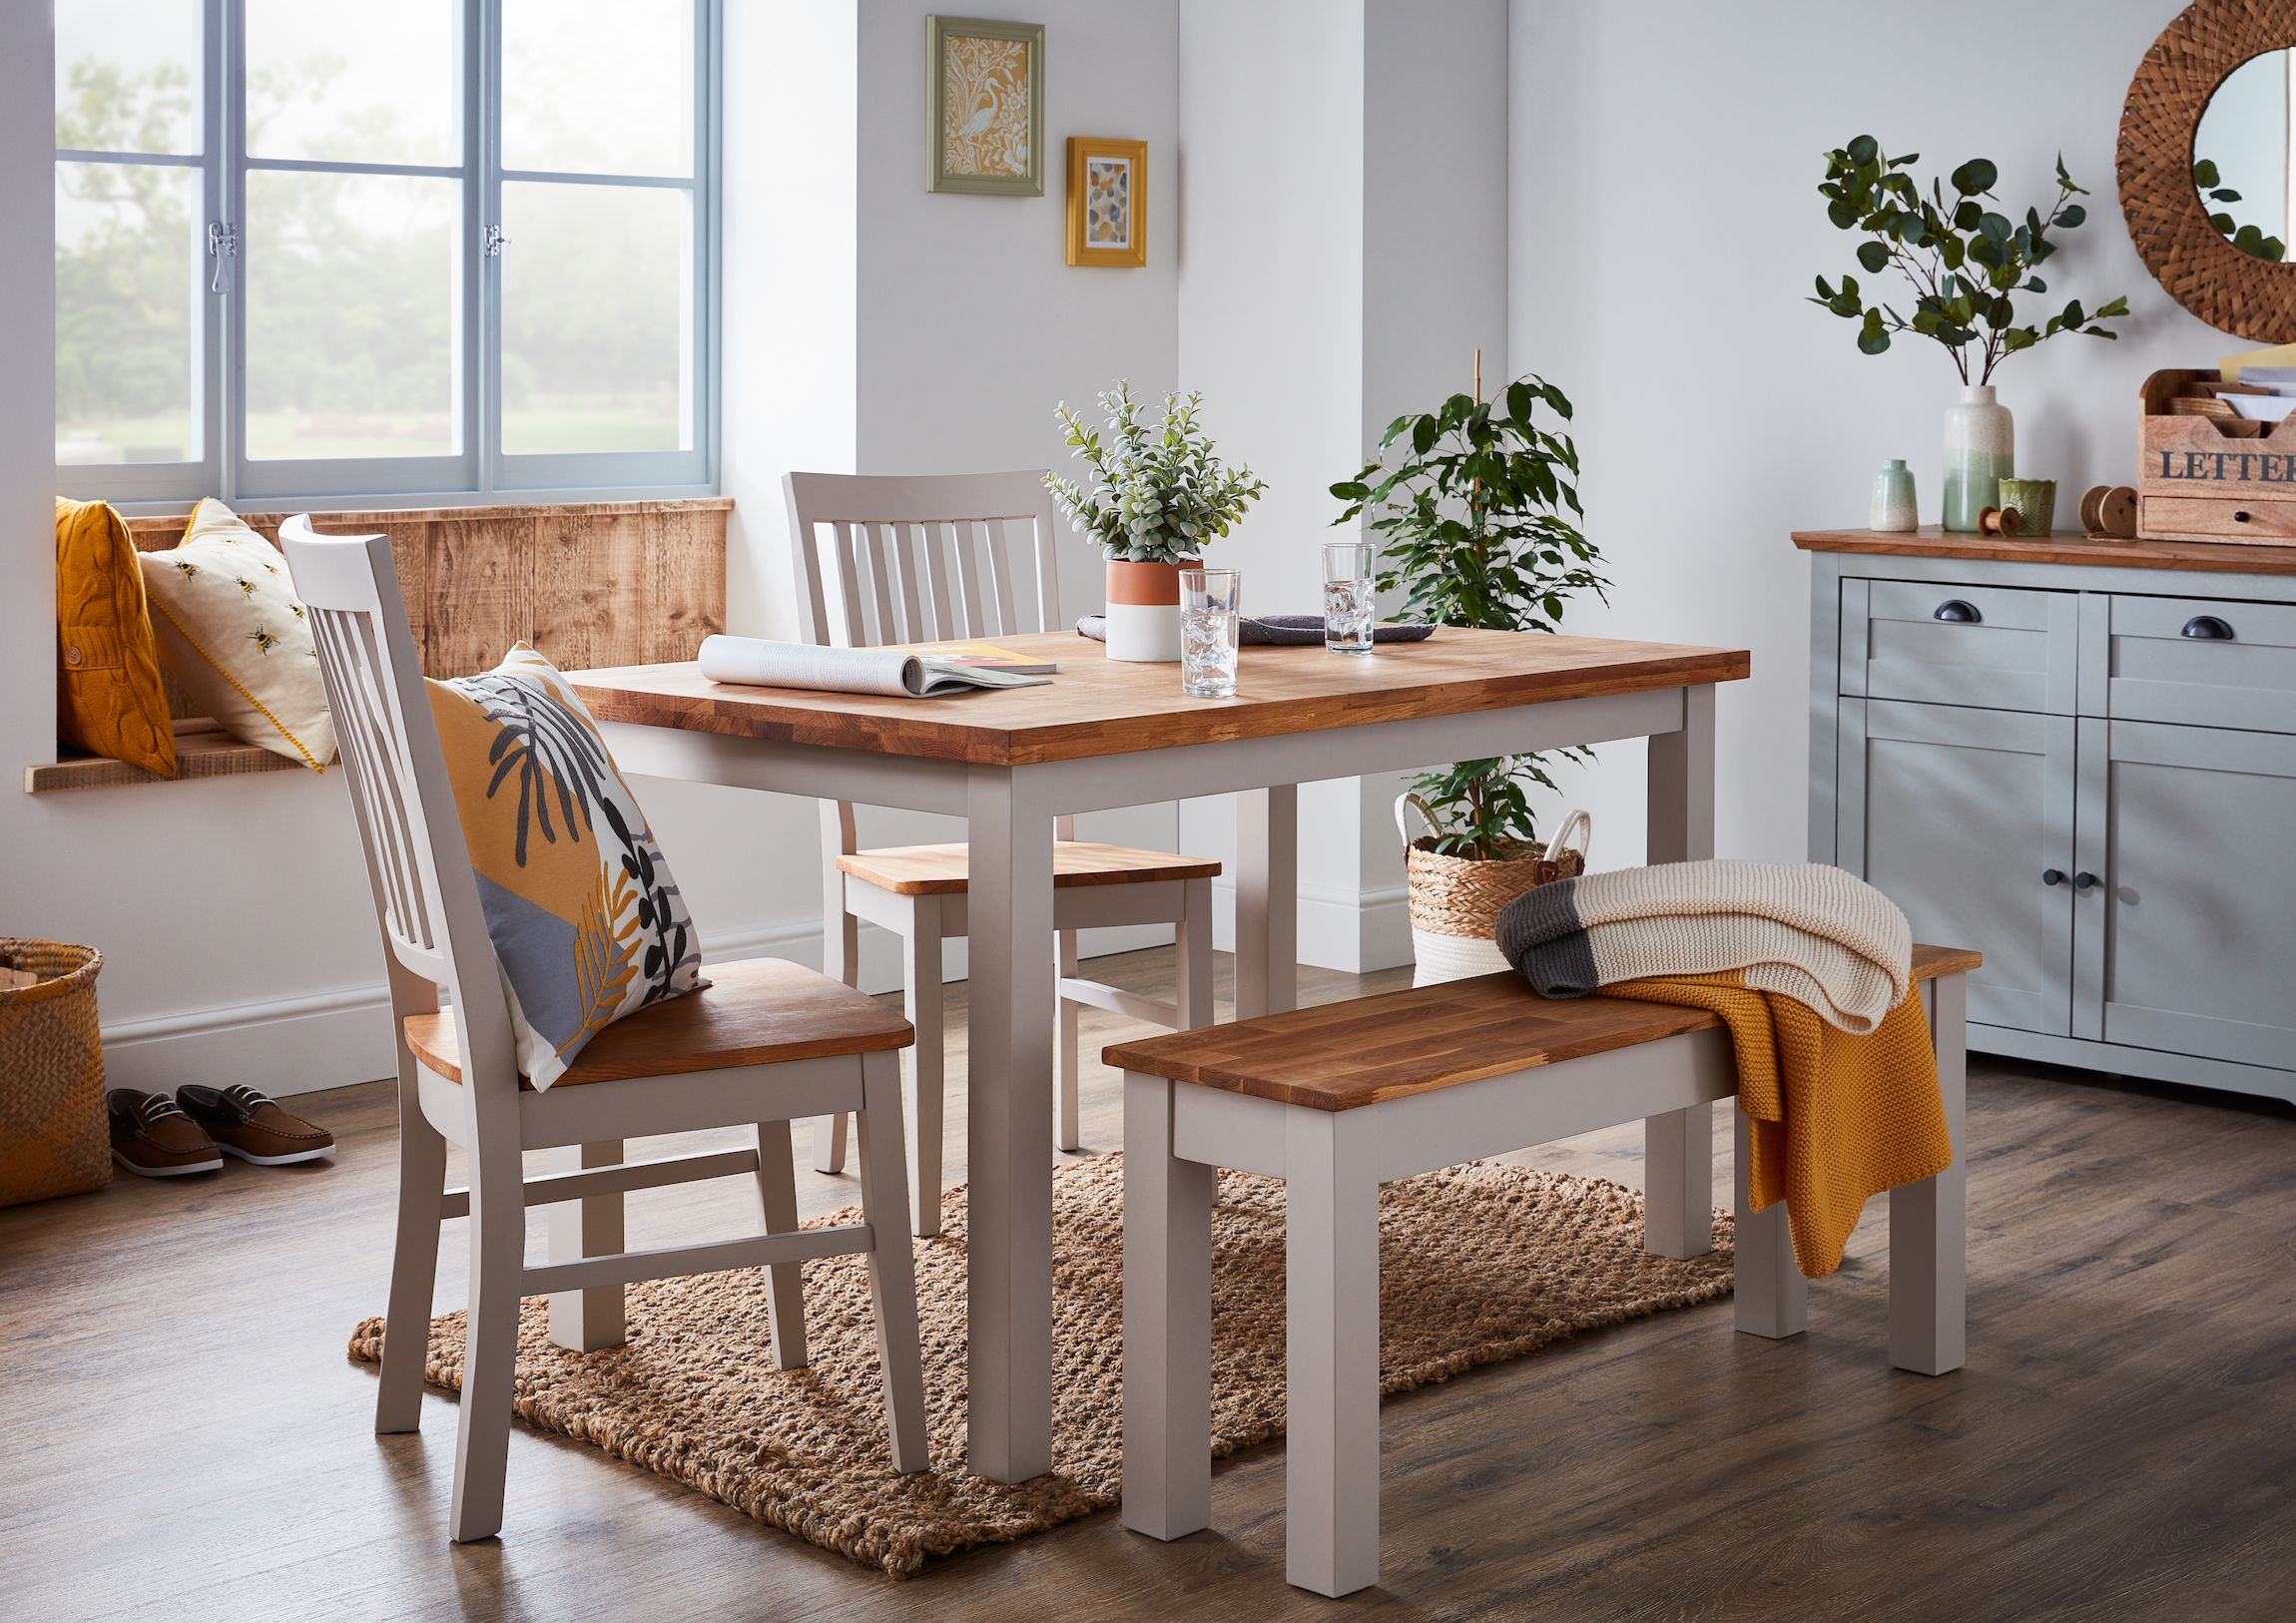 House Beautiful is launching a kitchen, home and garden range with